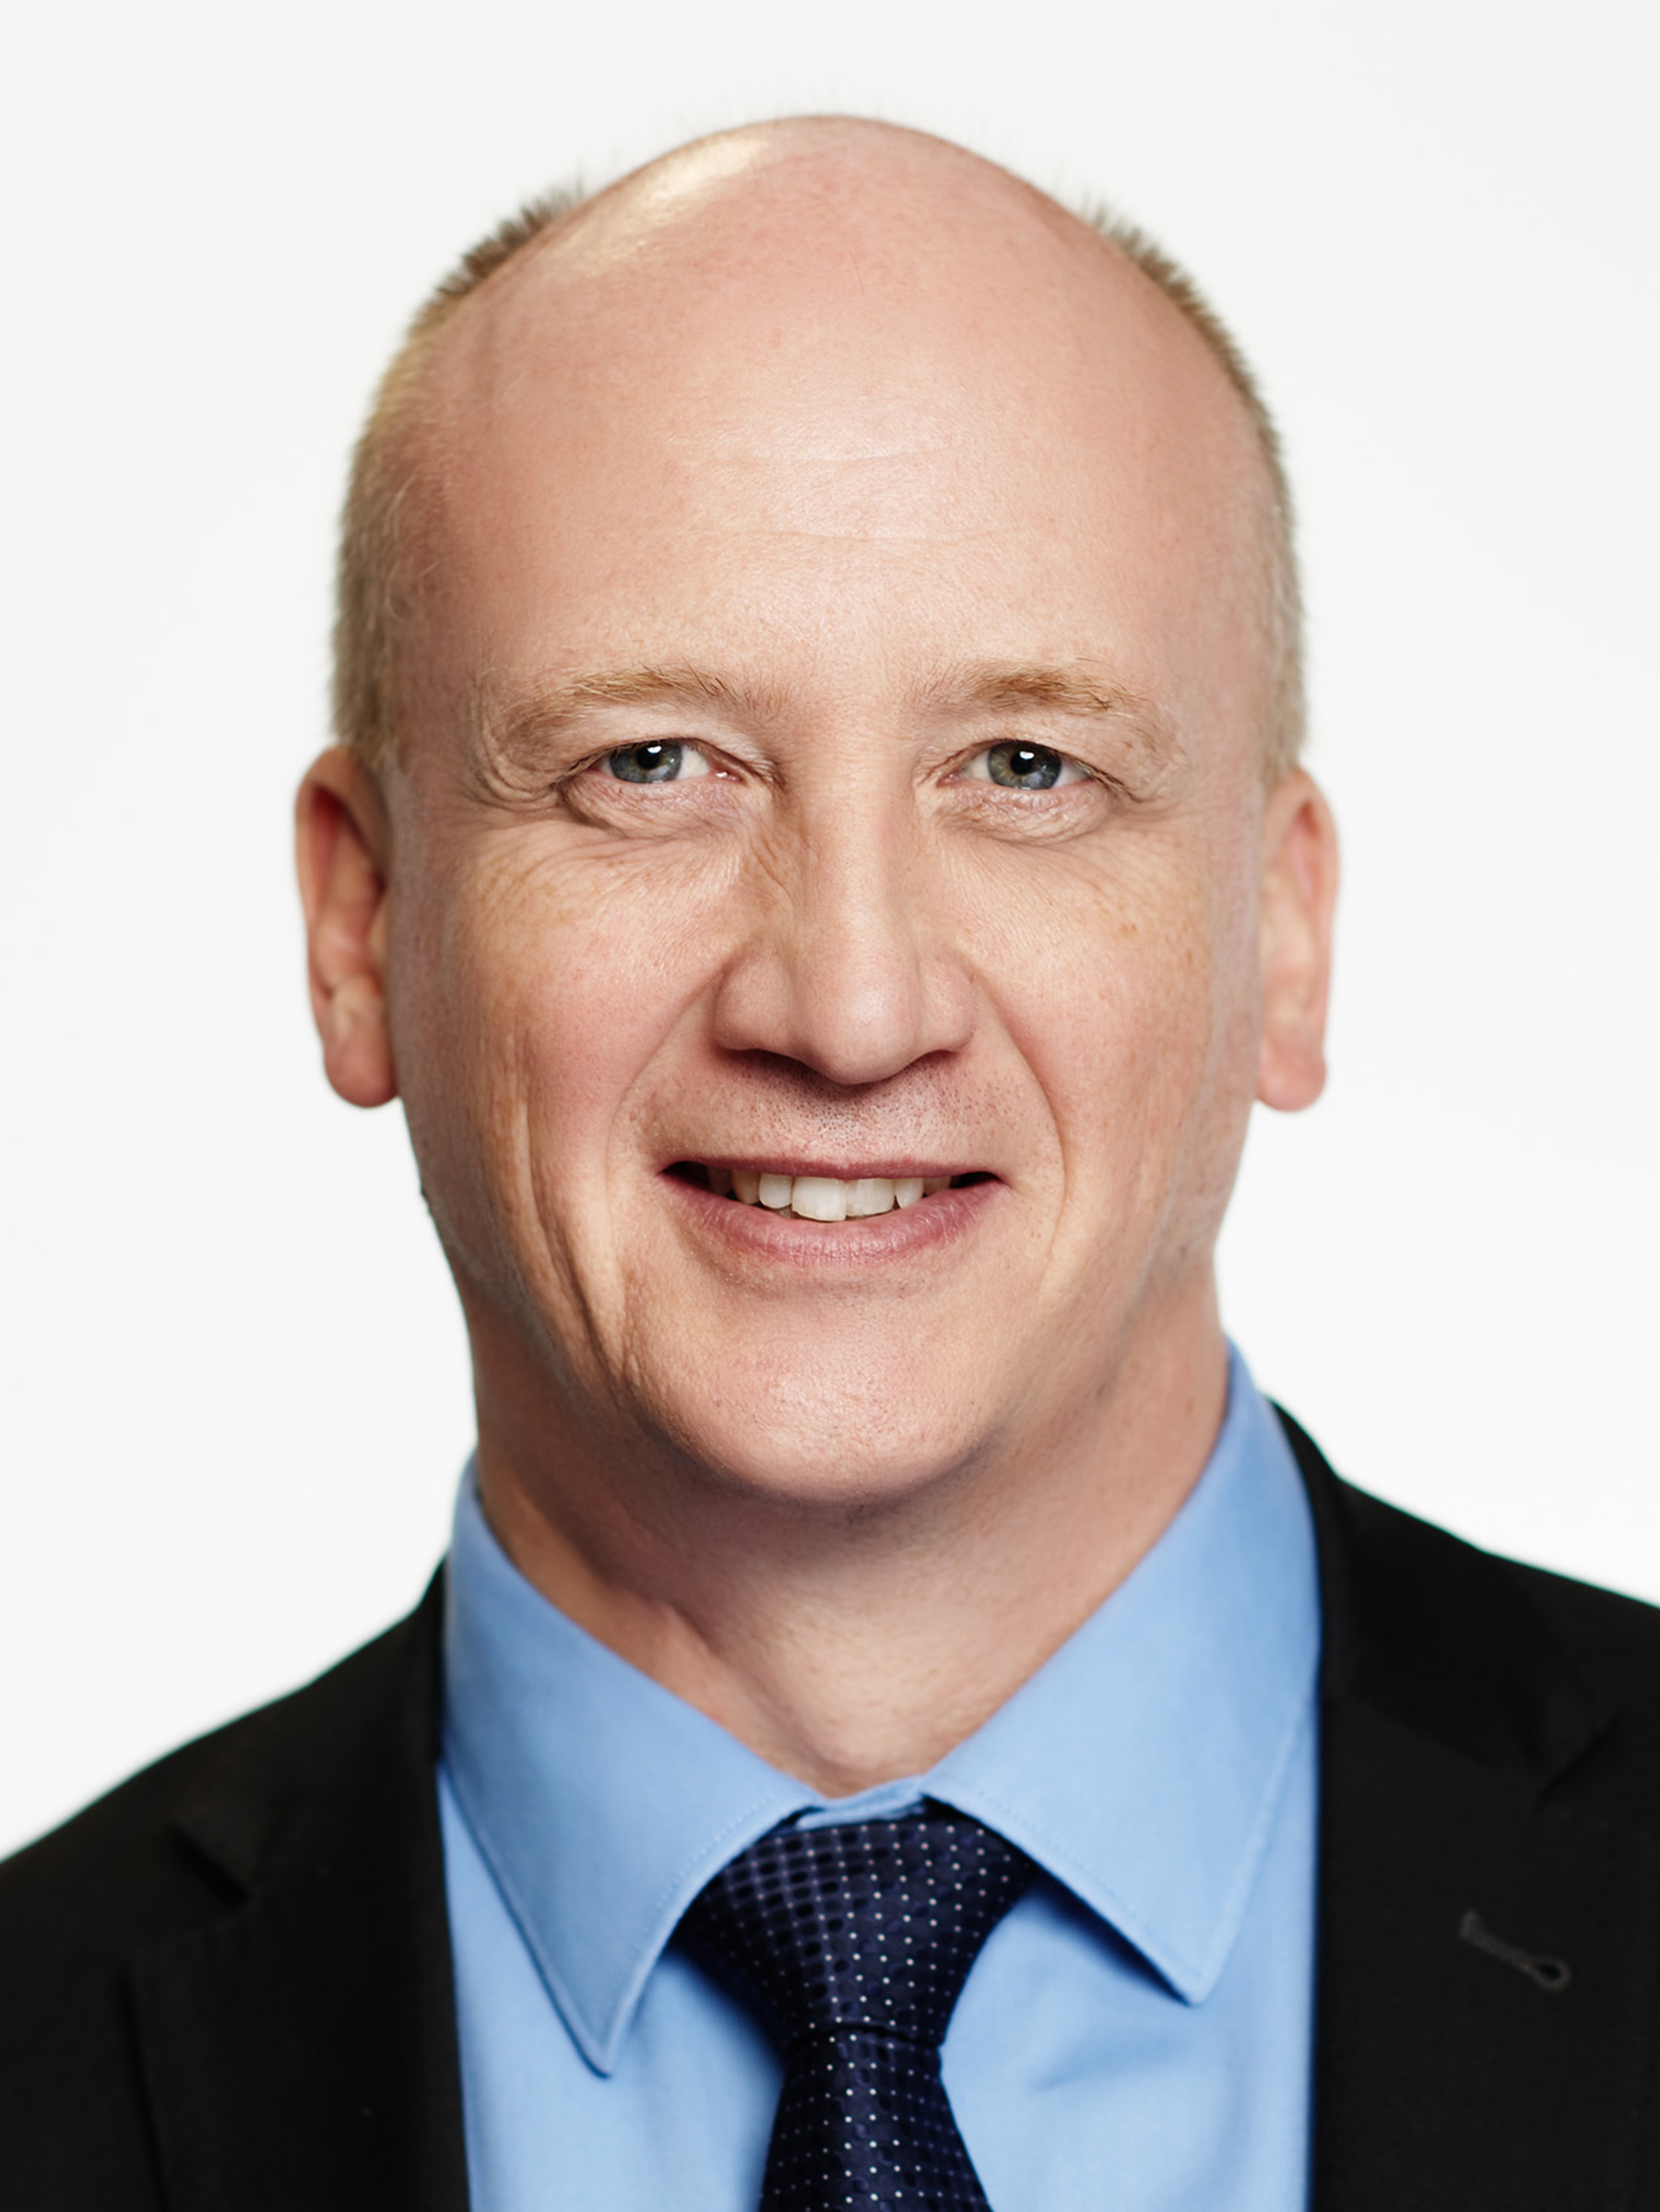 Portrait Of Poul Bottern, CEO Of IntoWork Australia And Board Member At Interact Australia